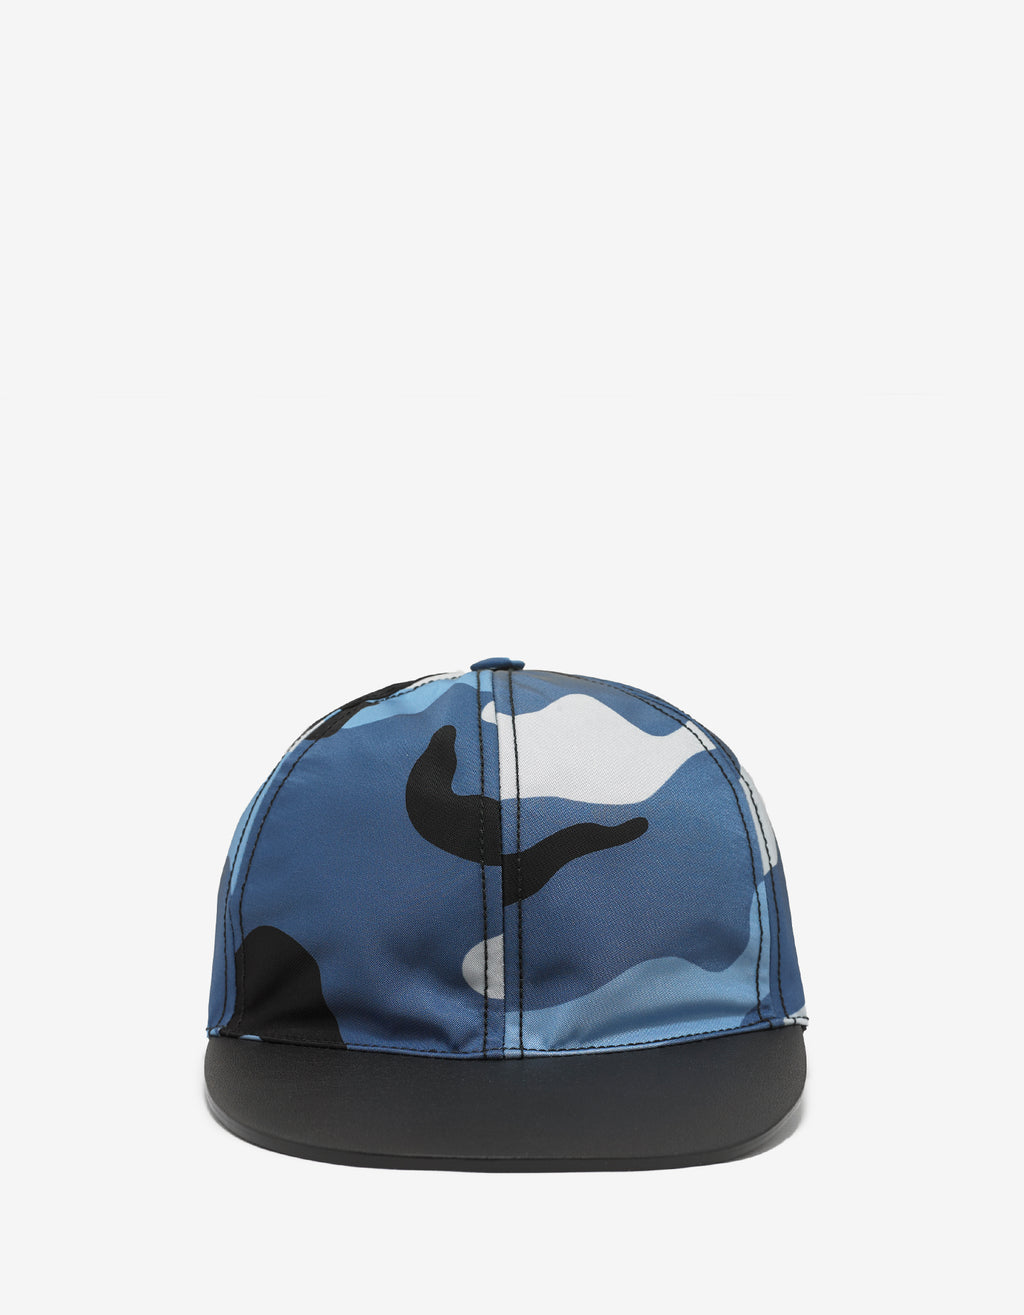 Light Blue Camouflage Cap